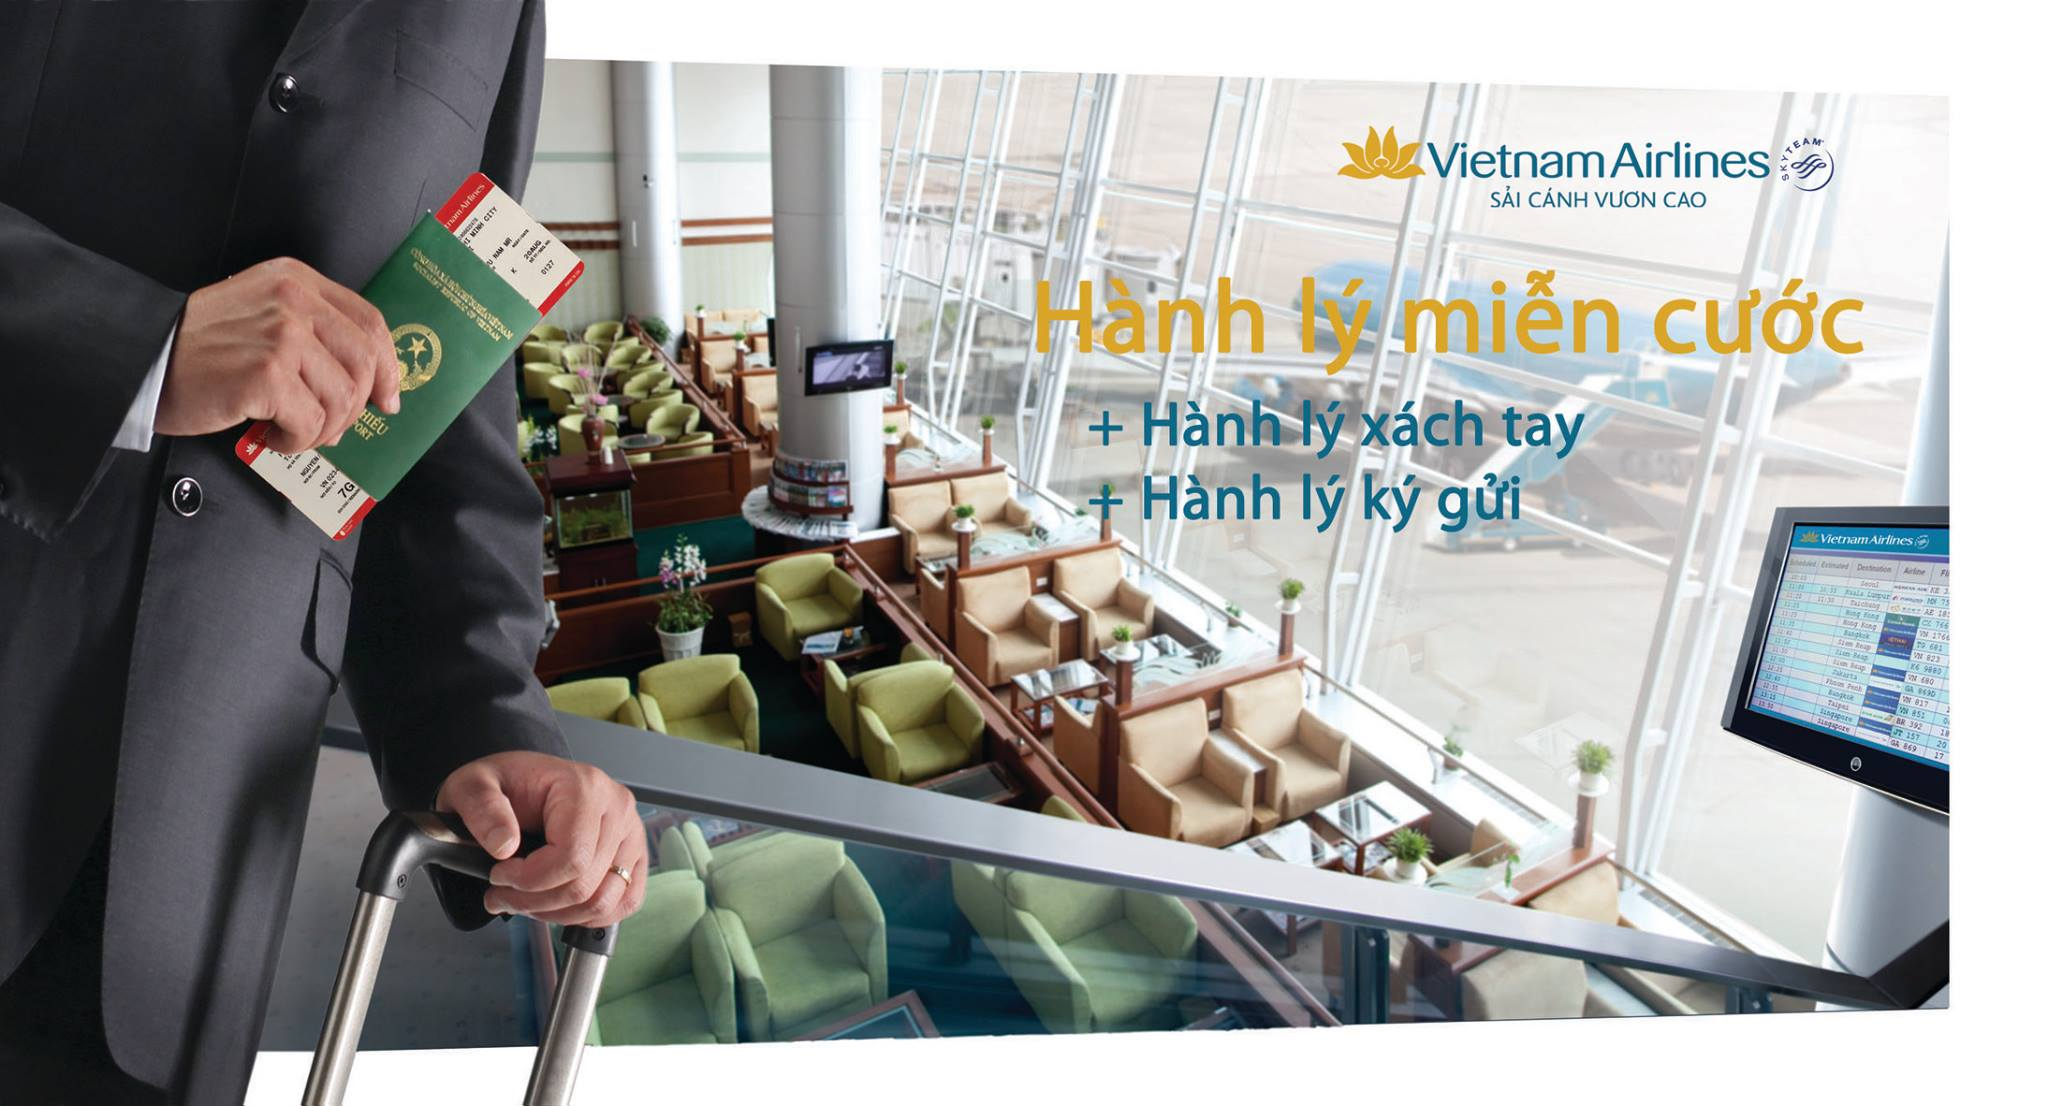 hanh ly mien cuoc cua vietnam airline